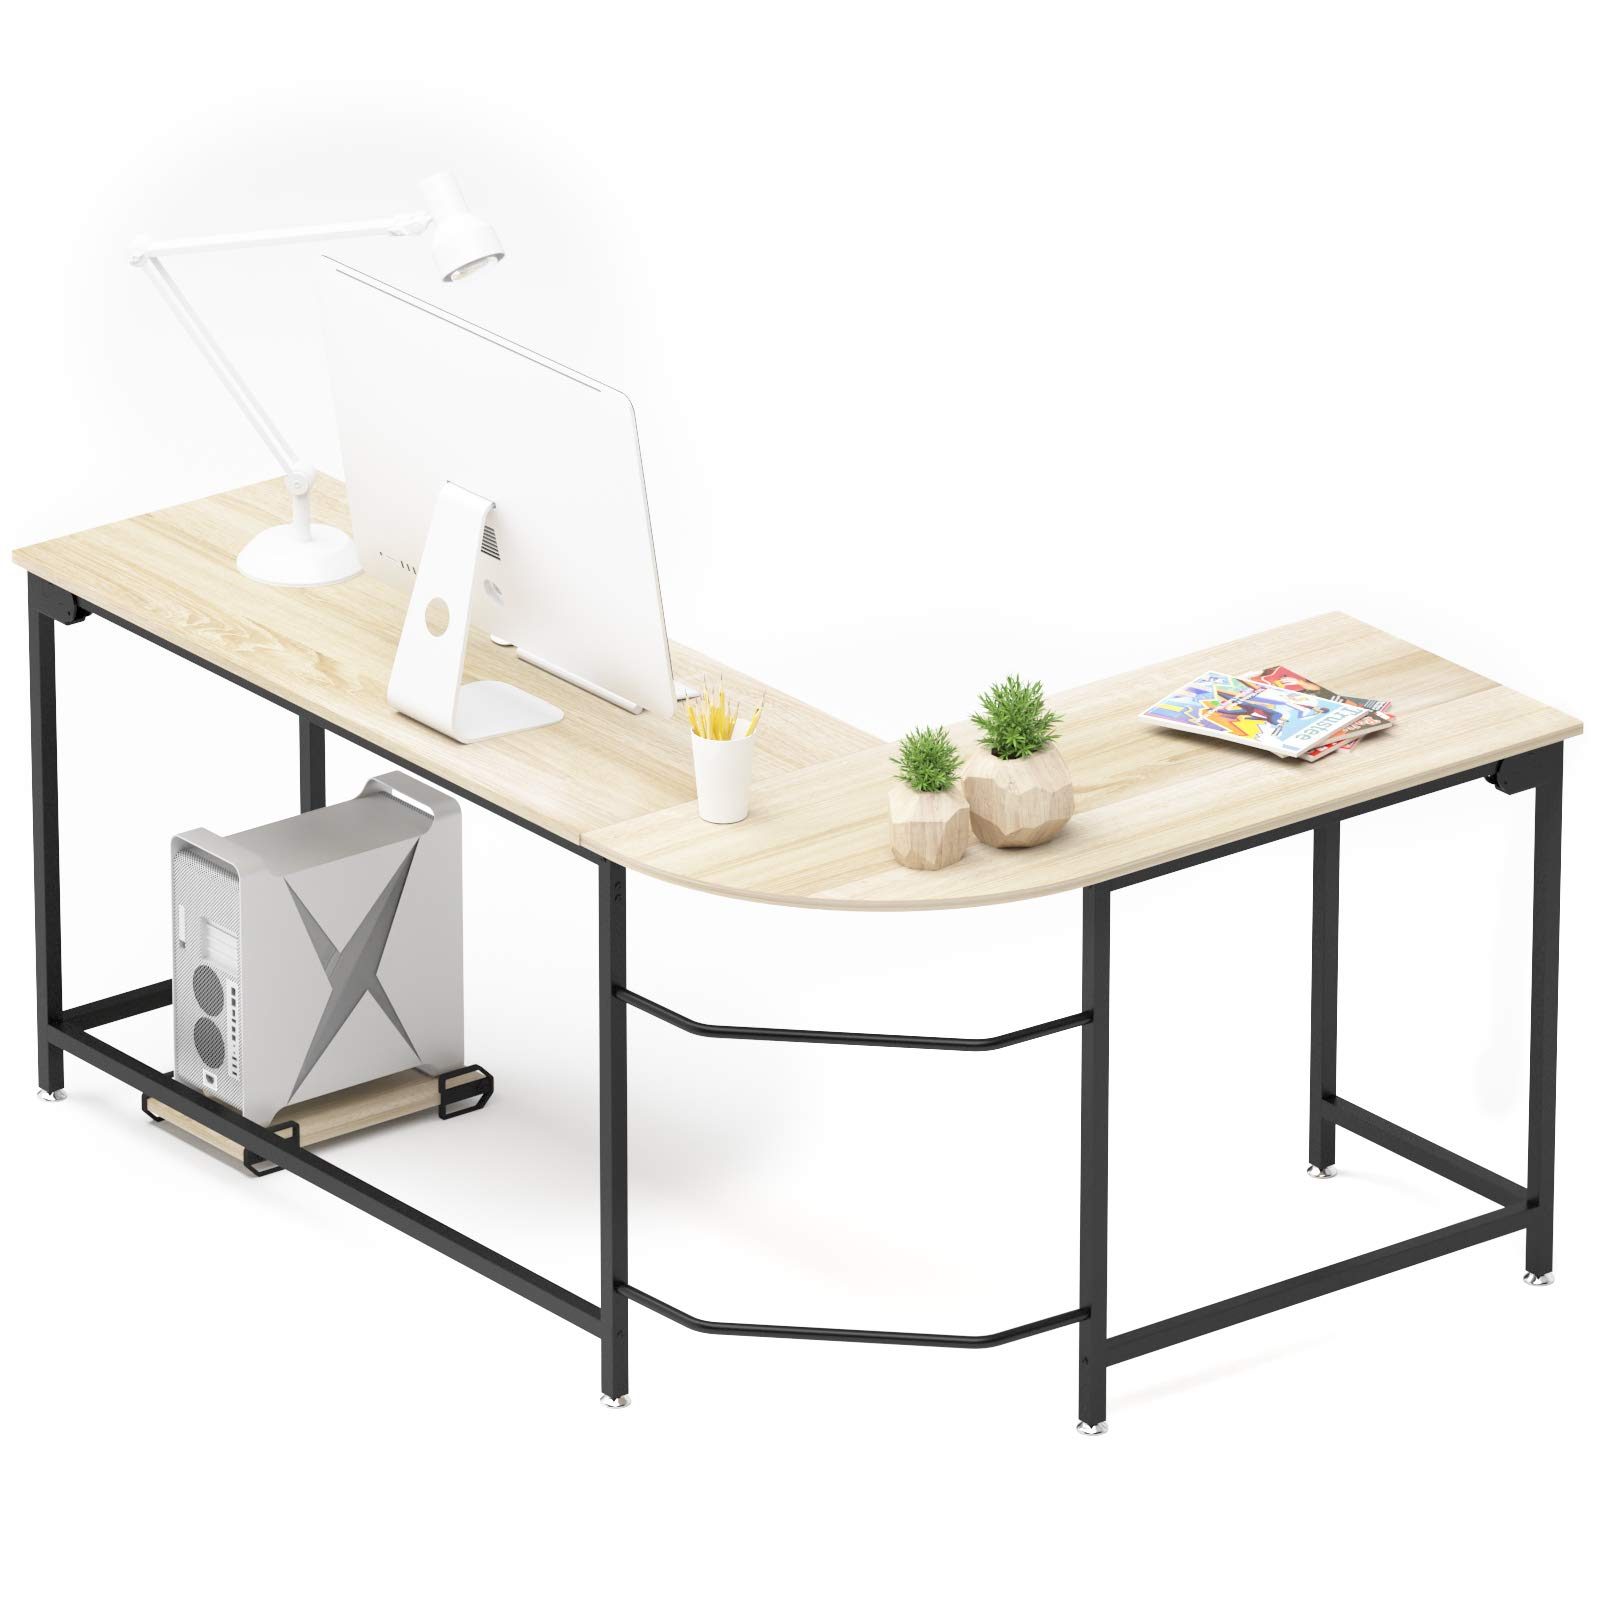 Wooden Corner Computer Desk Home Office L-Shaped Study Gaming Table With Shelves